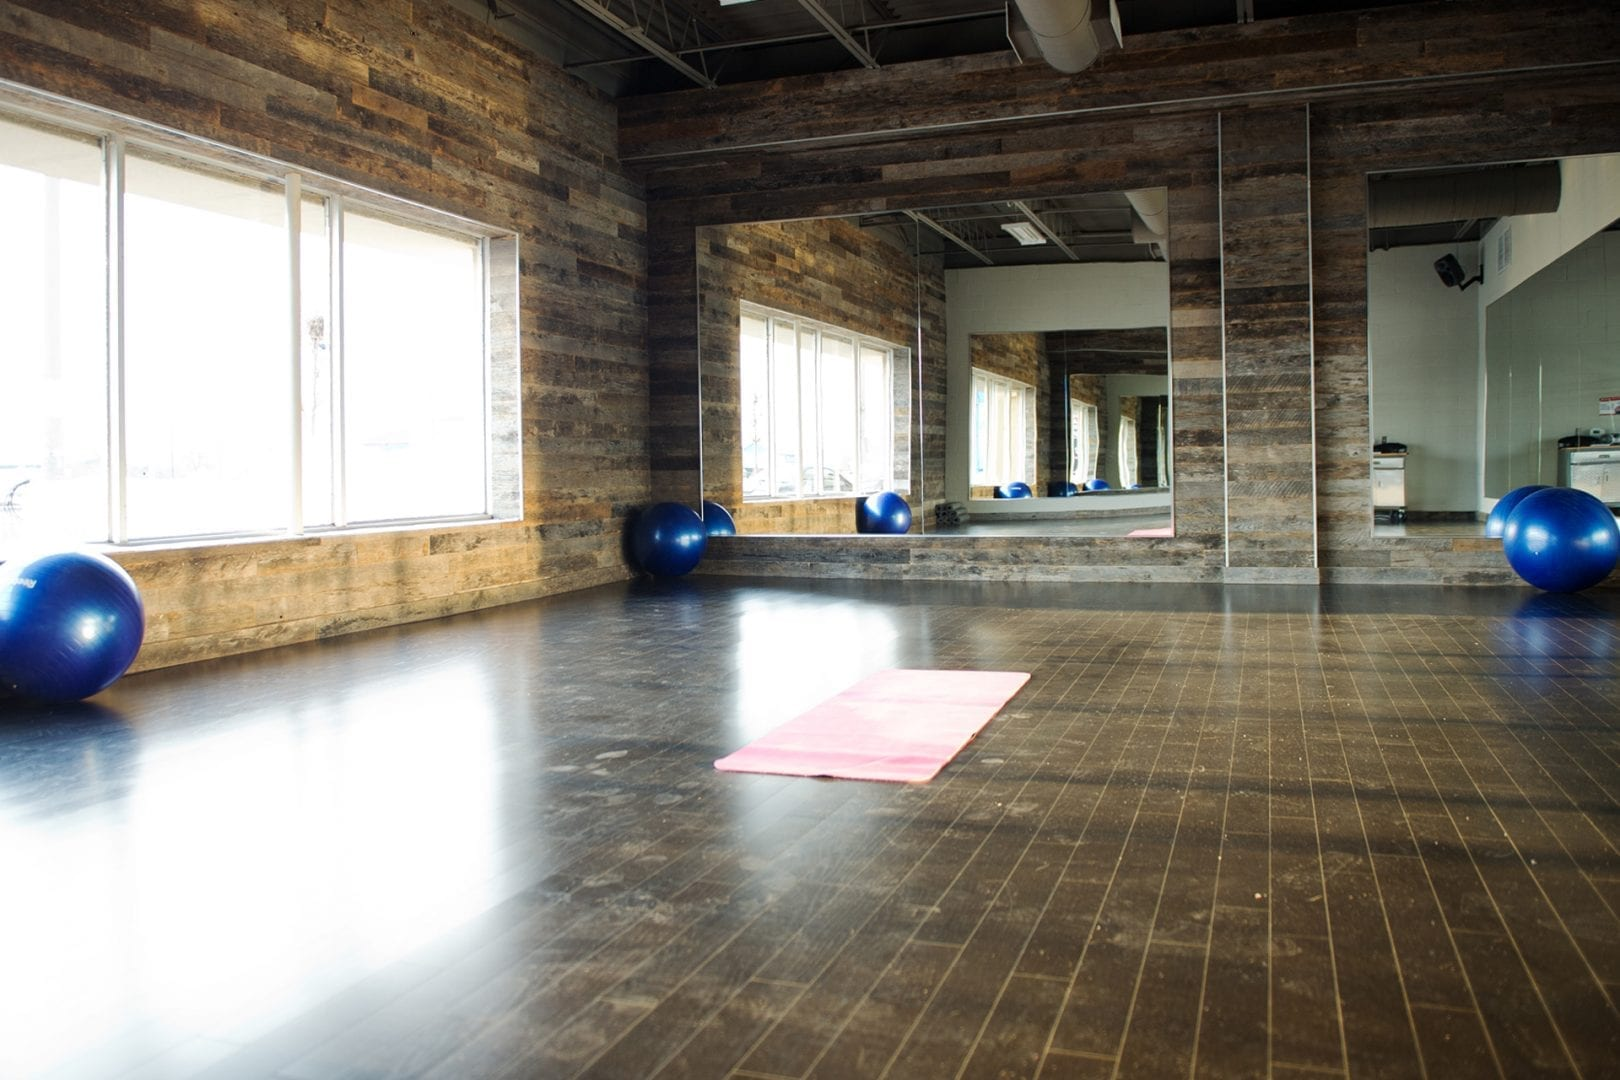 group-fitness-studio-with-glass-windows-mirrors-and-wood-shiplap-walls-and-floors